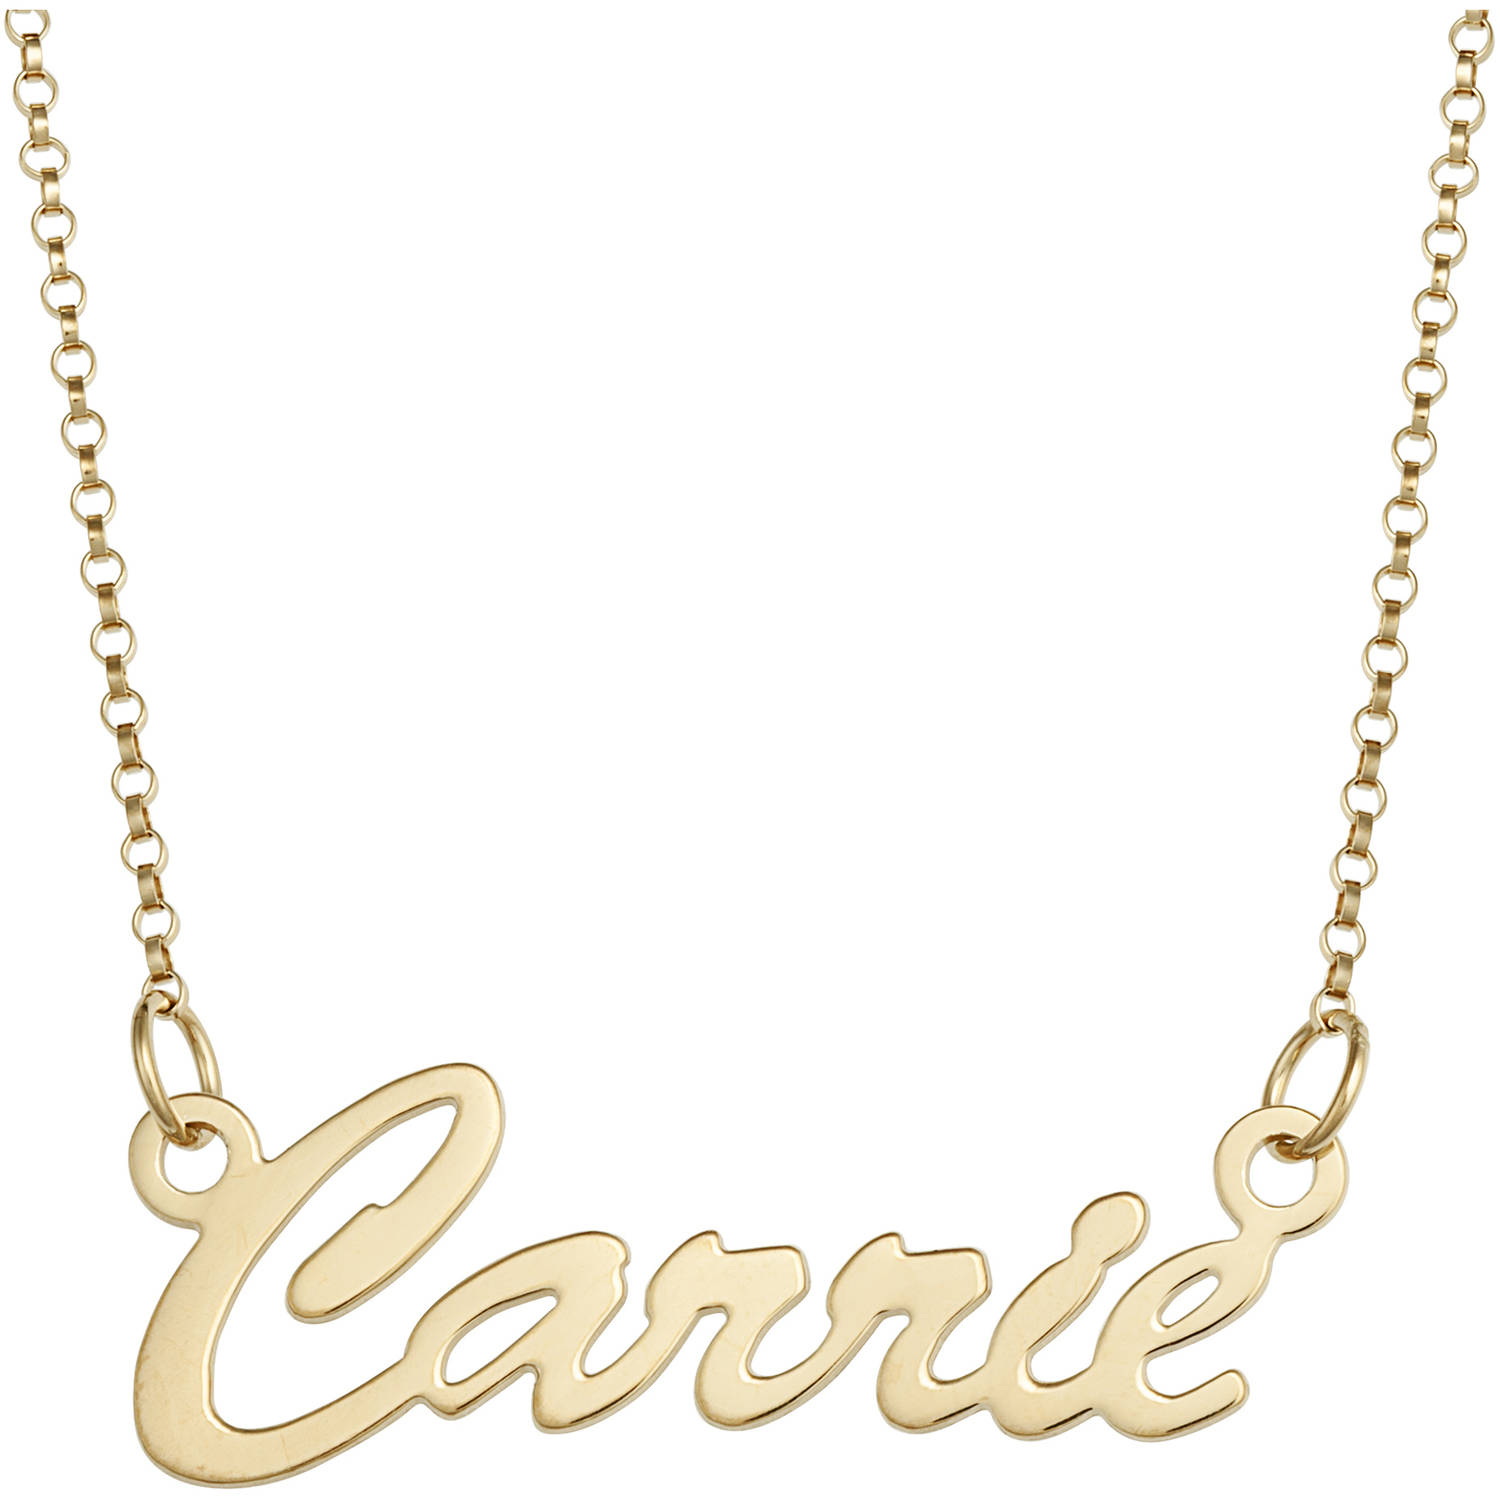 Personalized Premium, 1mm, Sterling Silver or 14kt Gold Plated Hollywood Script Name Necklace, 18""